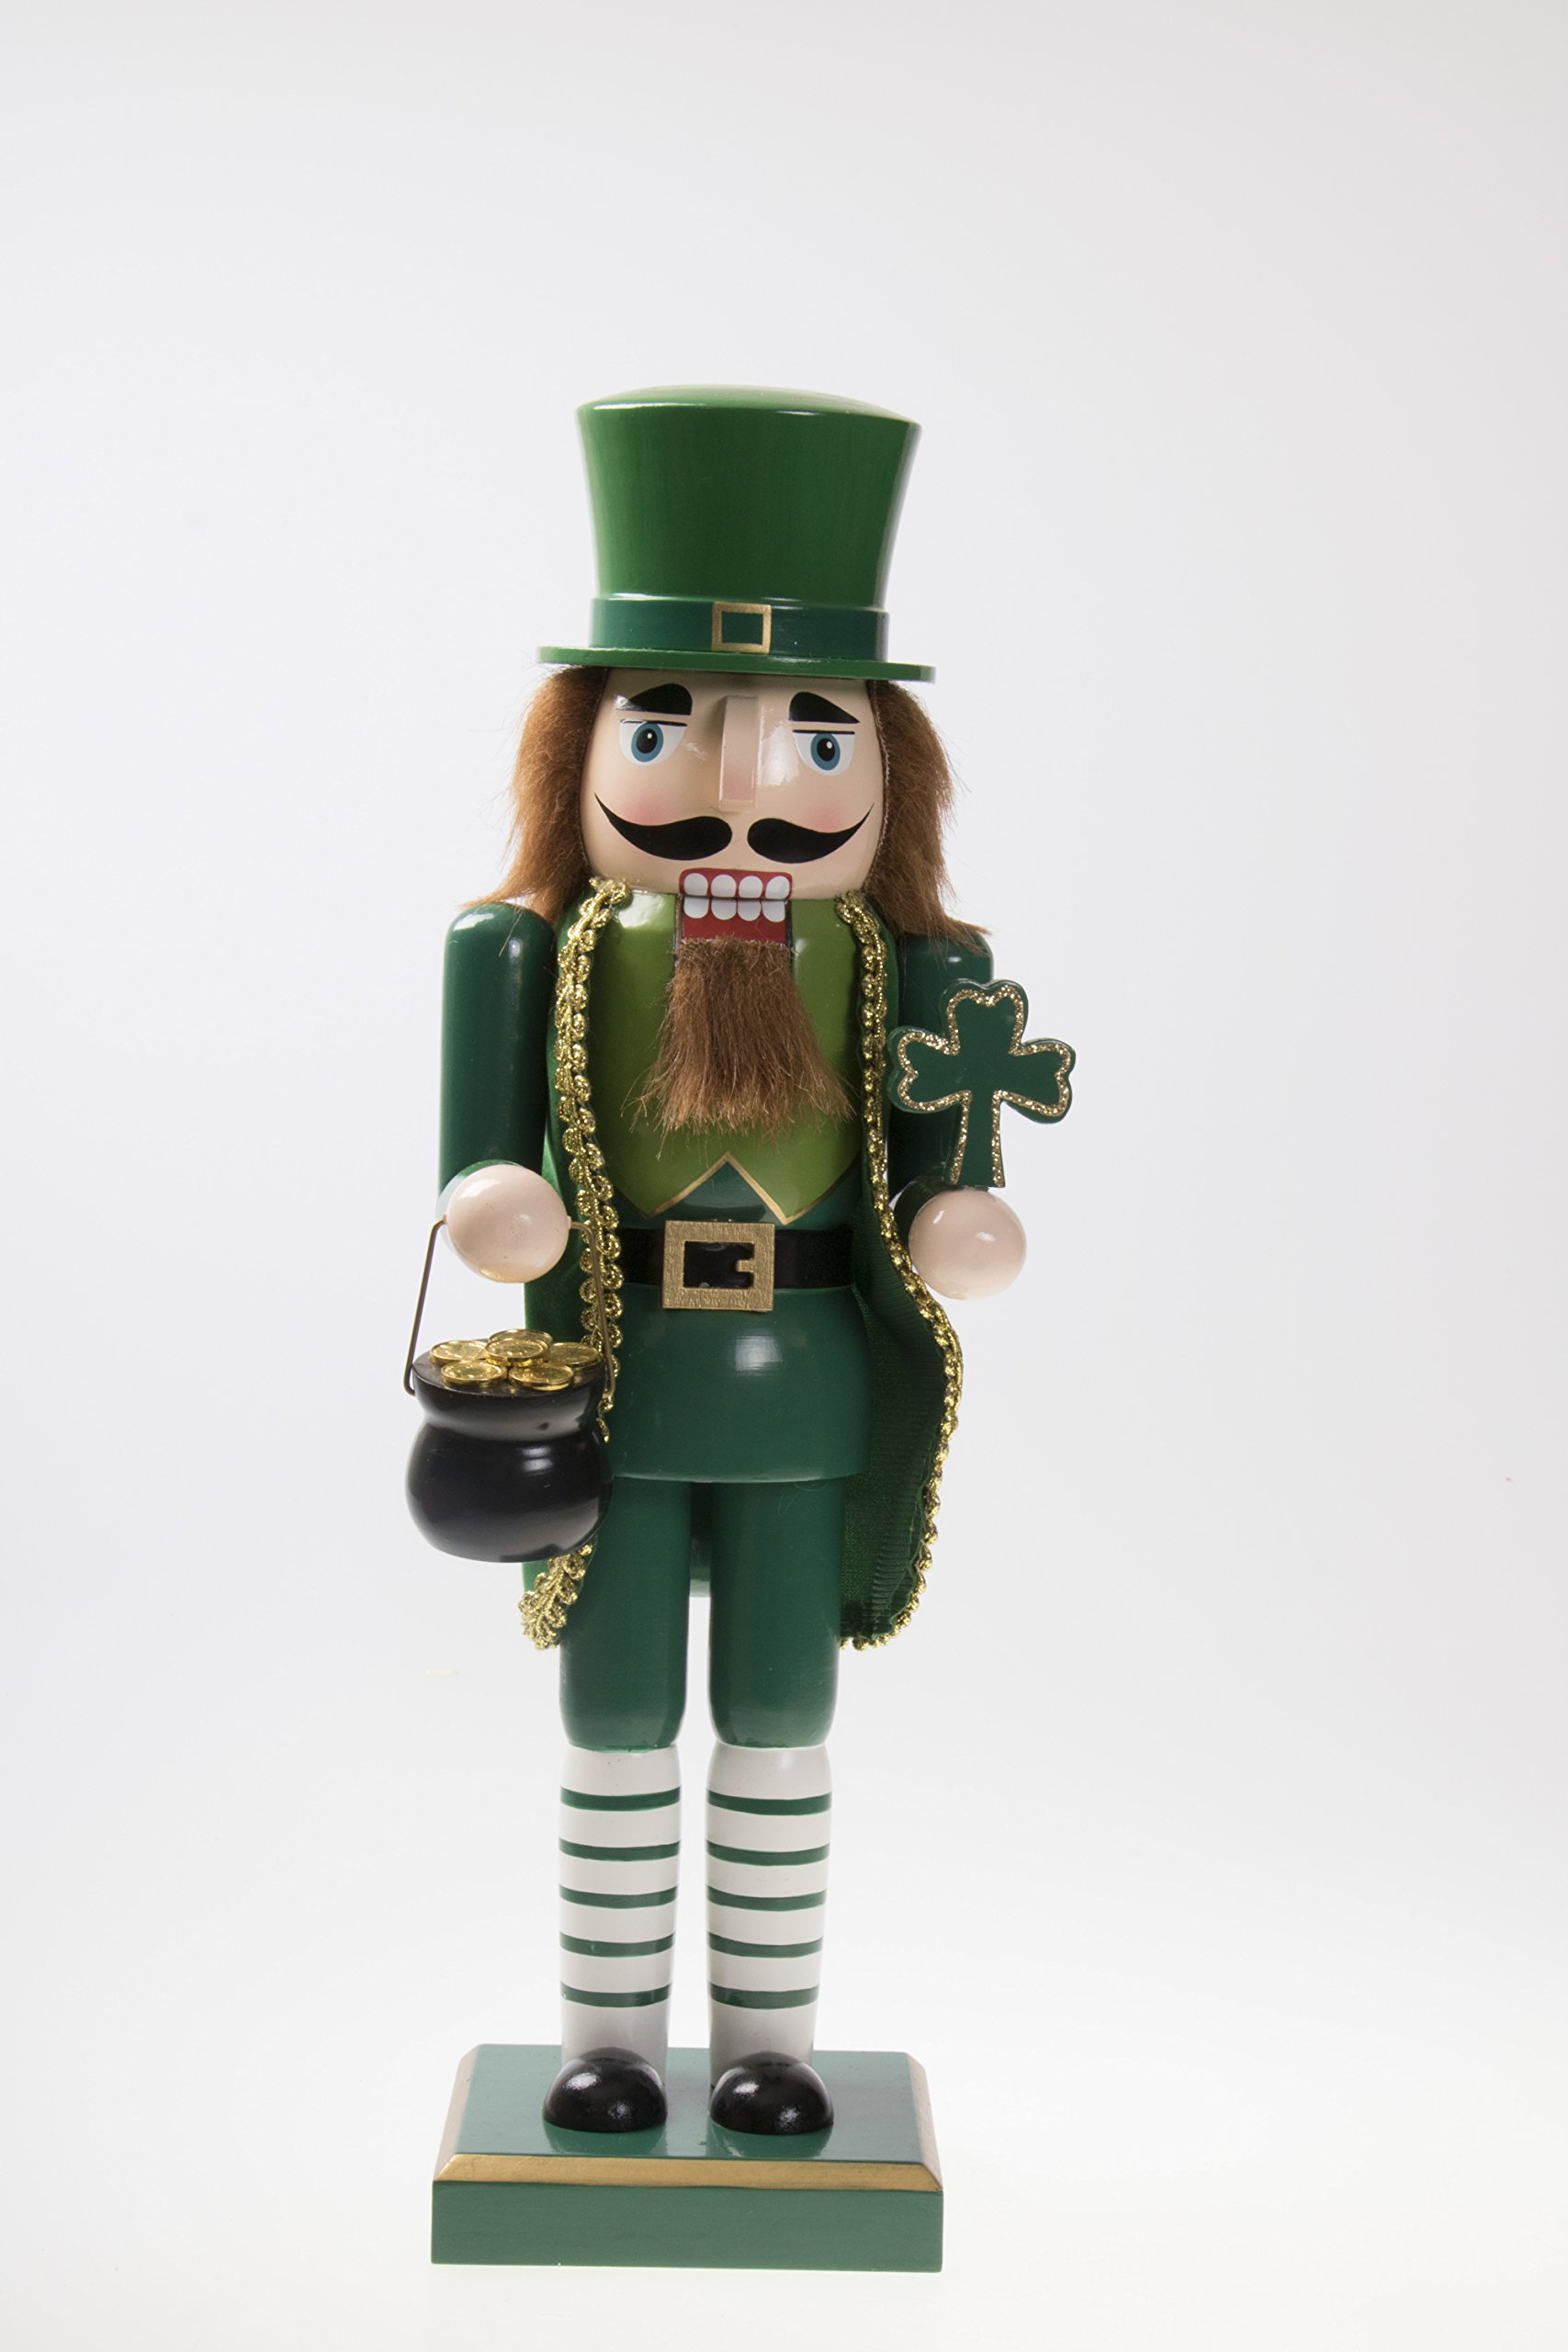 Clever Creations Traditional Irish Wooden Christmas Nutcracker Festive Holiday Decor | Wearing Green Holding Shamrock and Pot of Gold | Luck of The Irish | 100% Wood | 14'' Tall